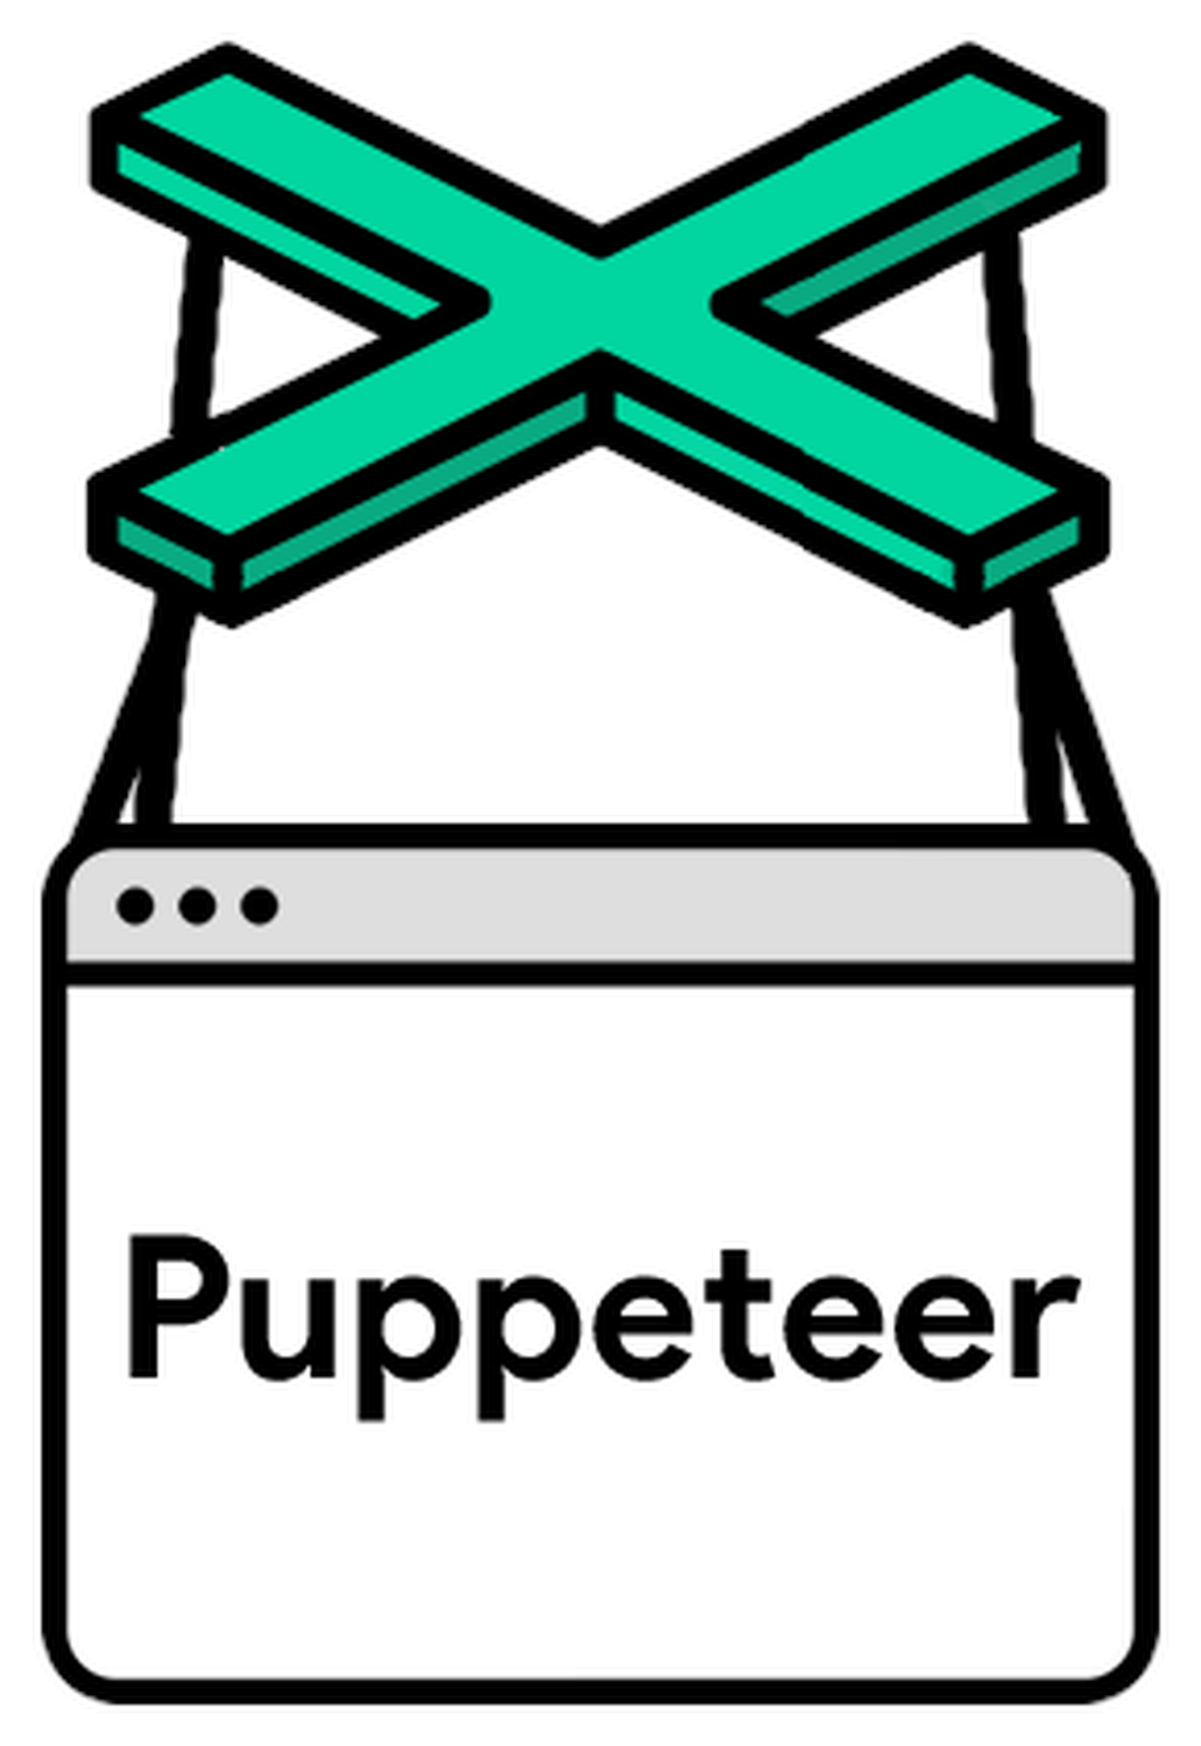 puppeteer(headless browser) | Wiki & Review | Everipedia